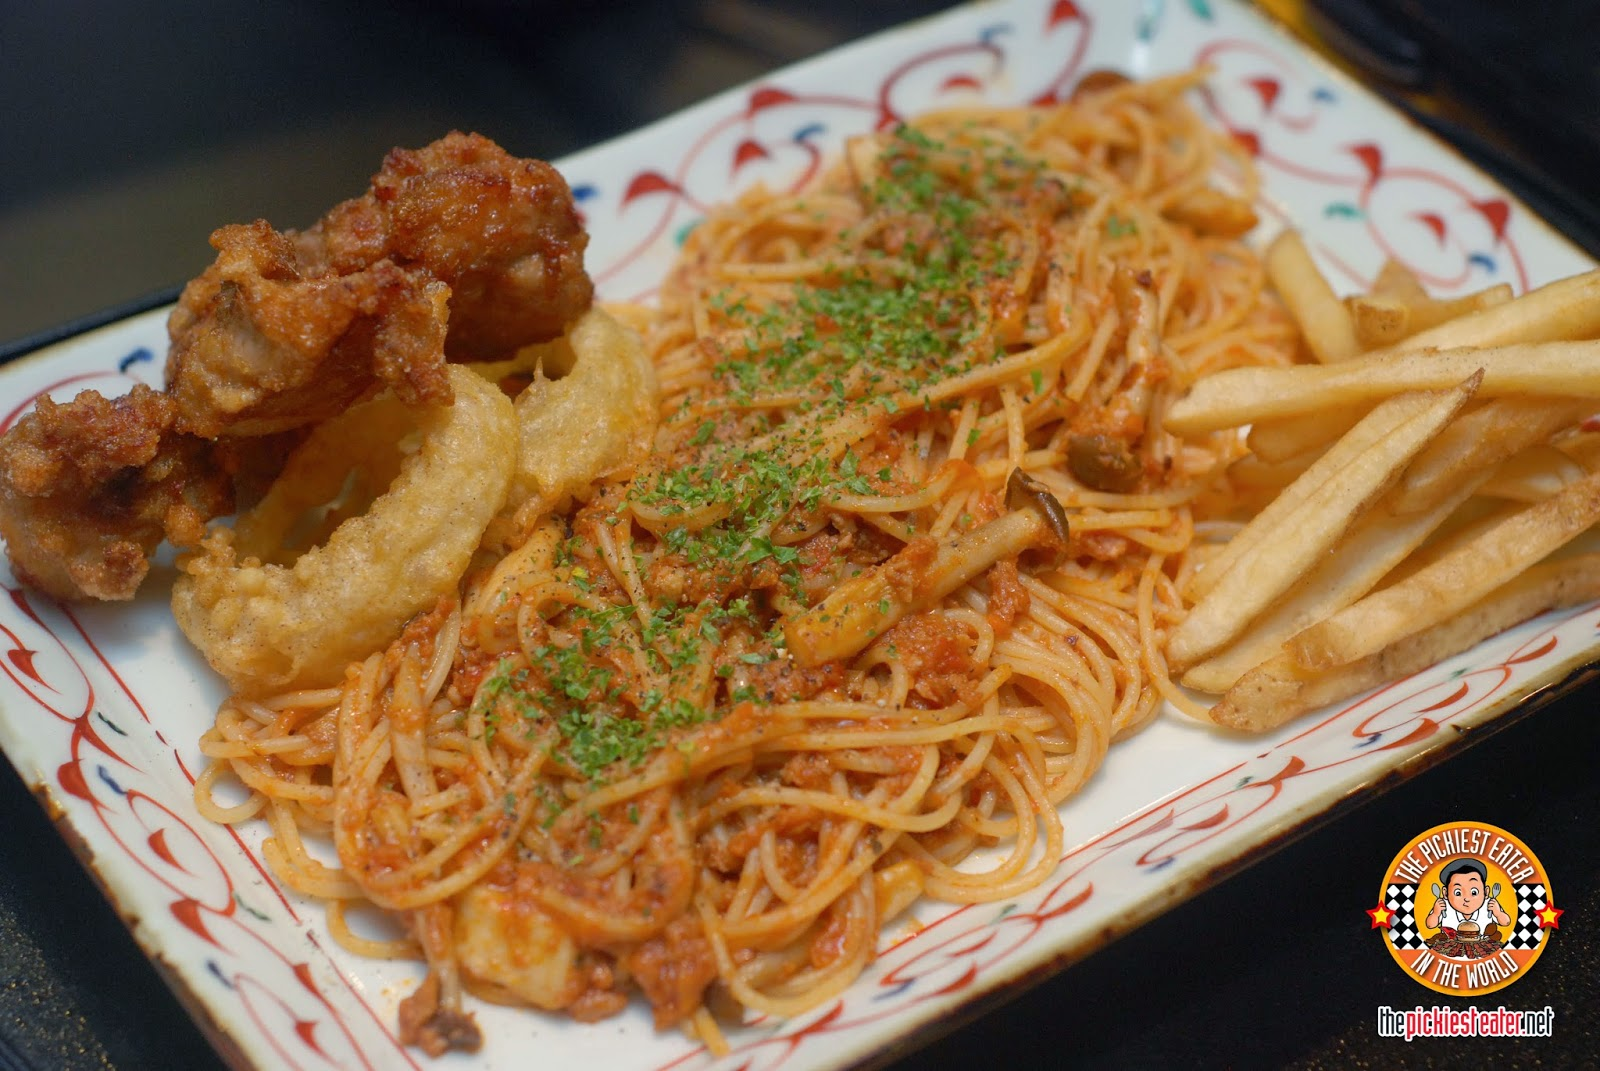 goemon fried chicken and meatsauce